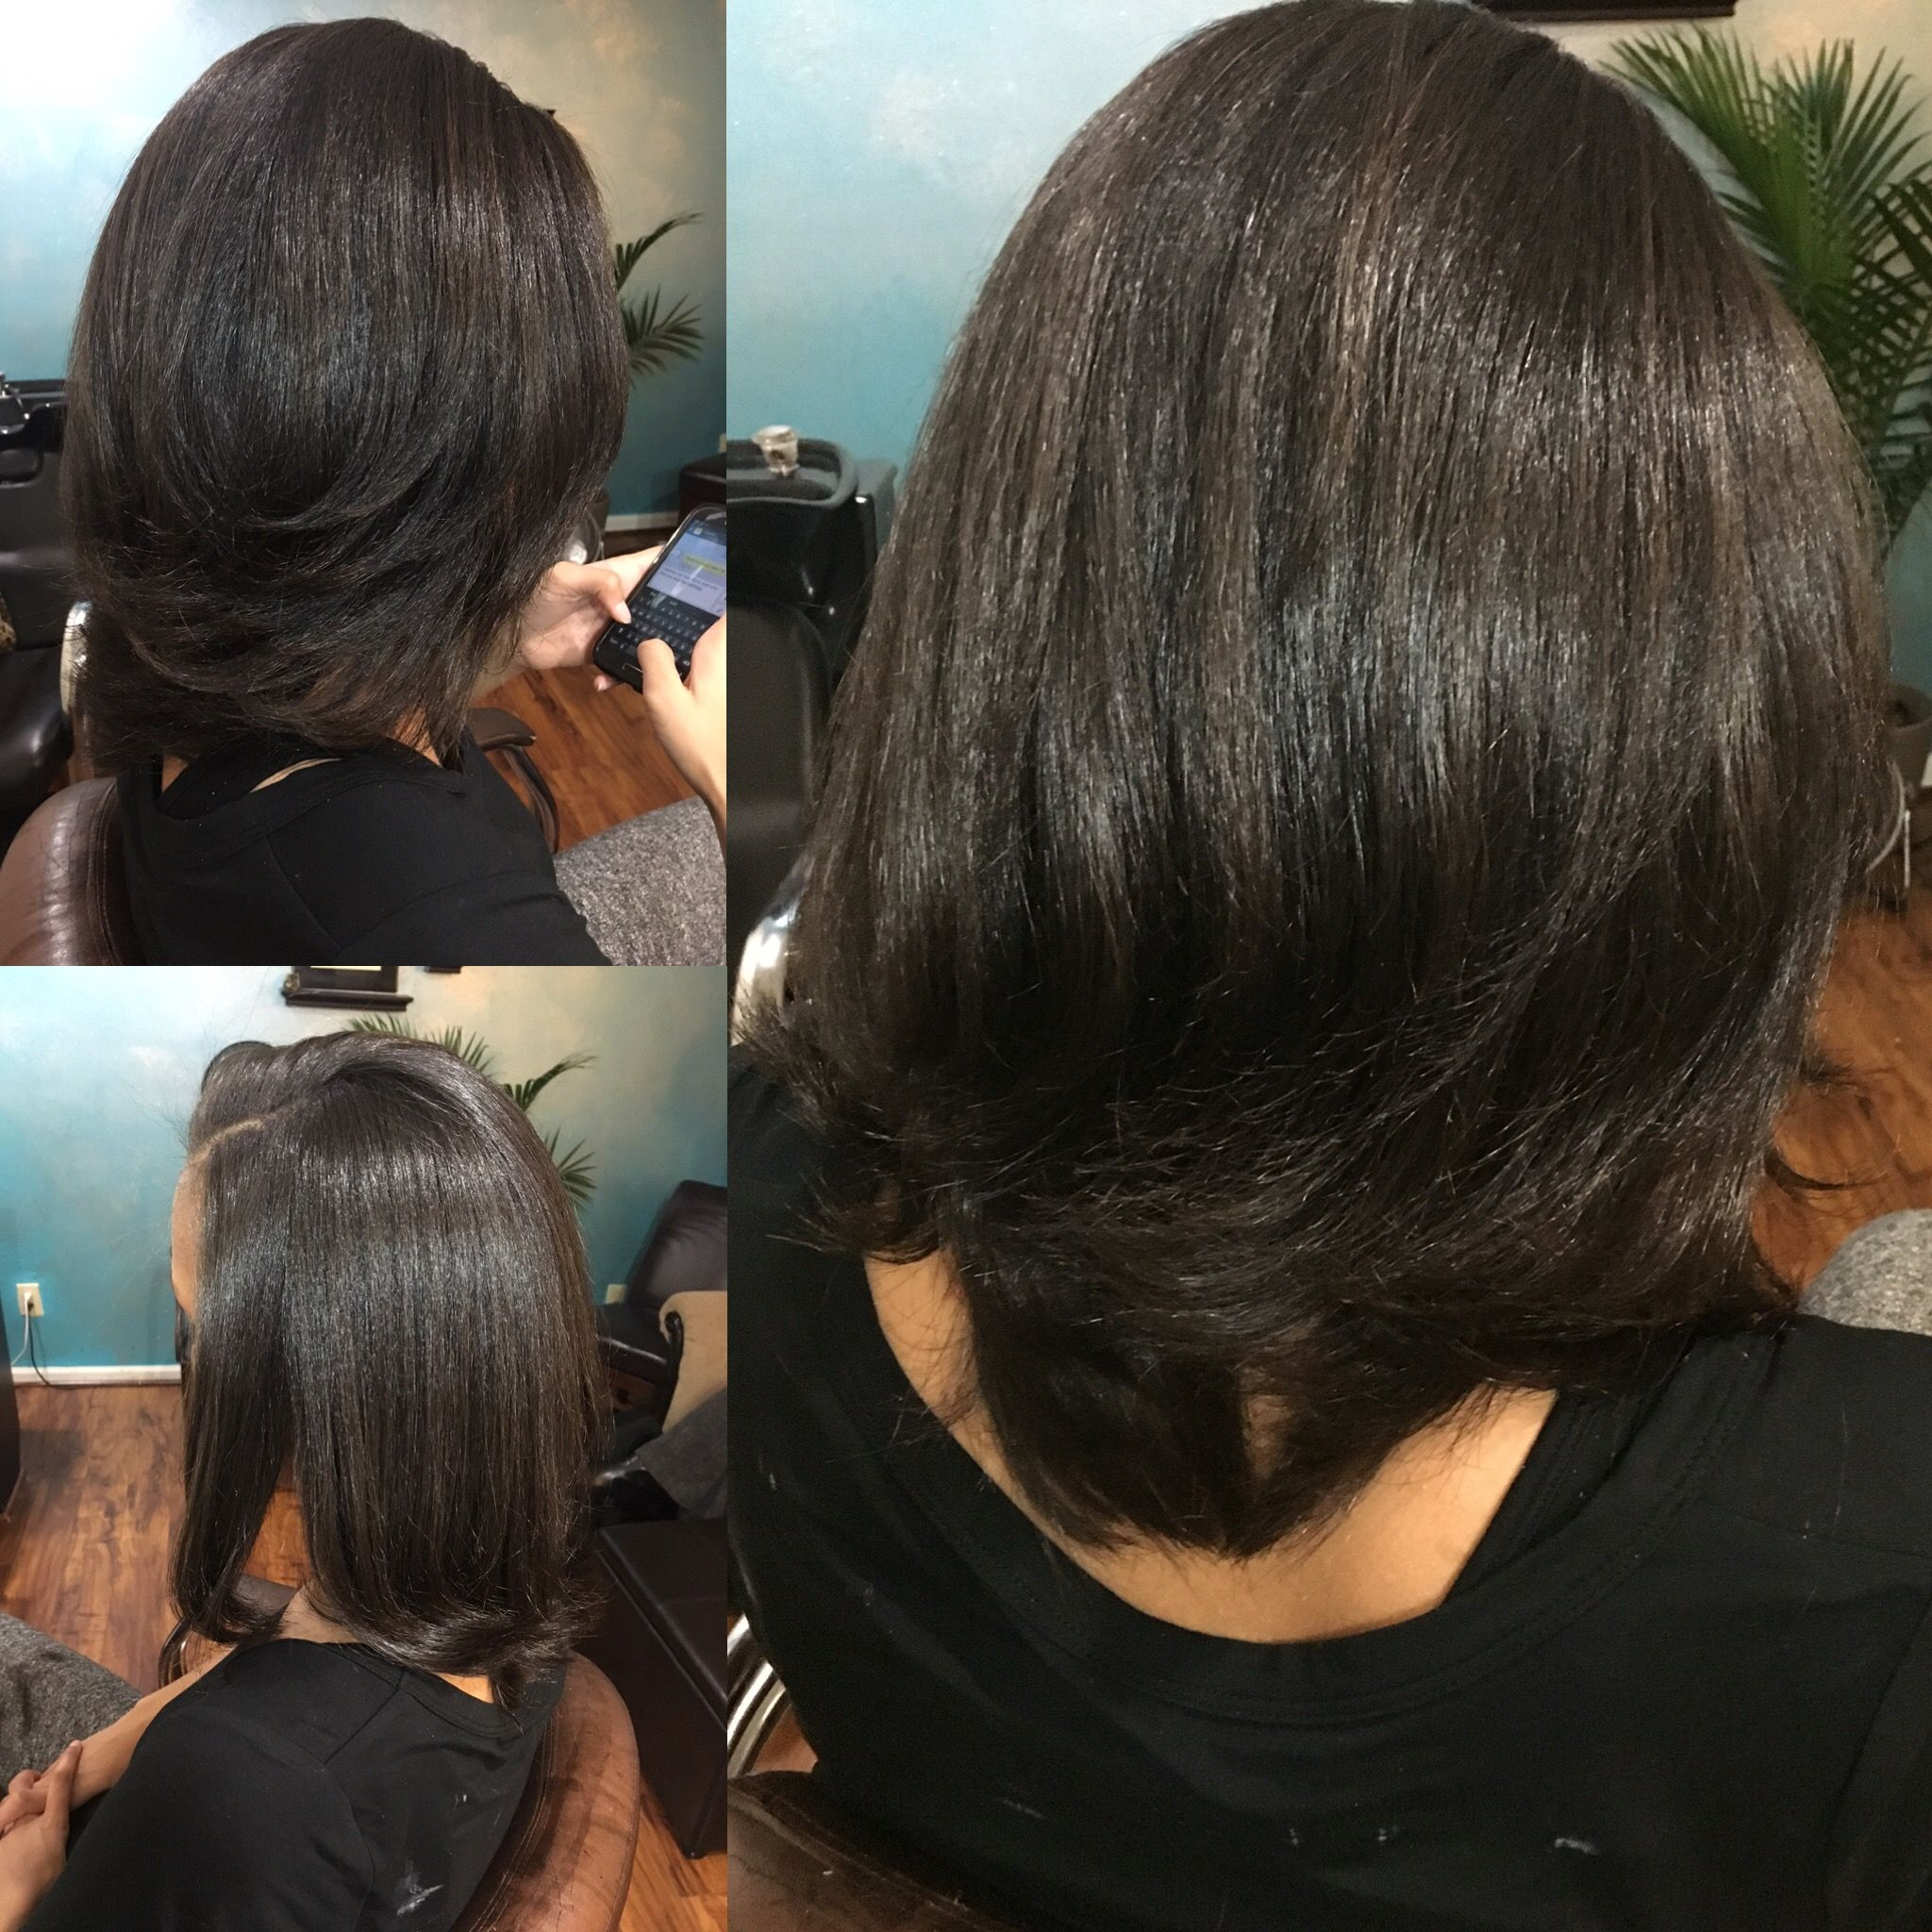 Straight perm groupon - Chi Enviro Smoothing Treatment On Natural Hair Treatment Cut And Style By